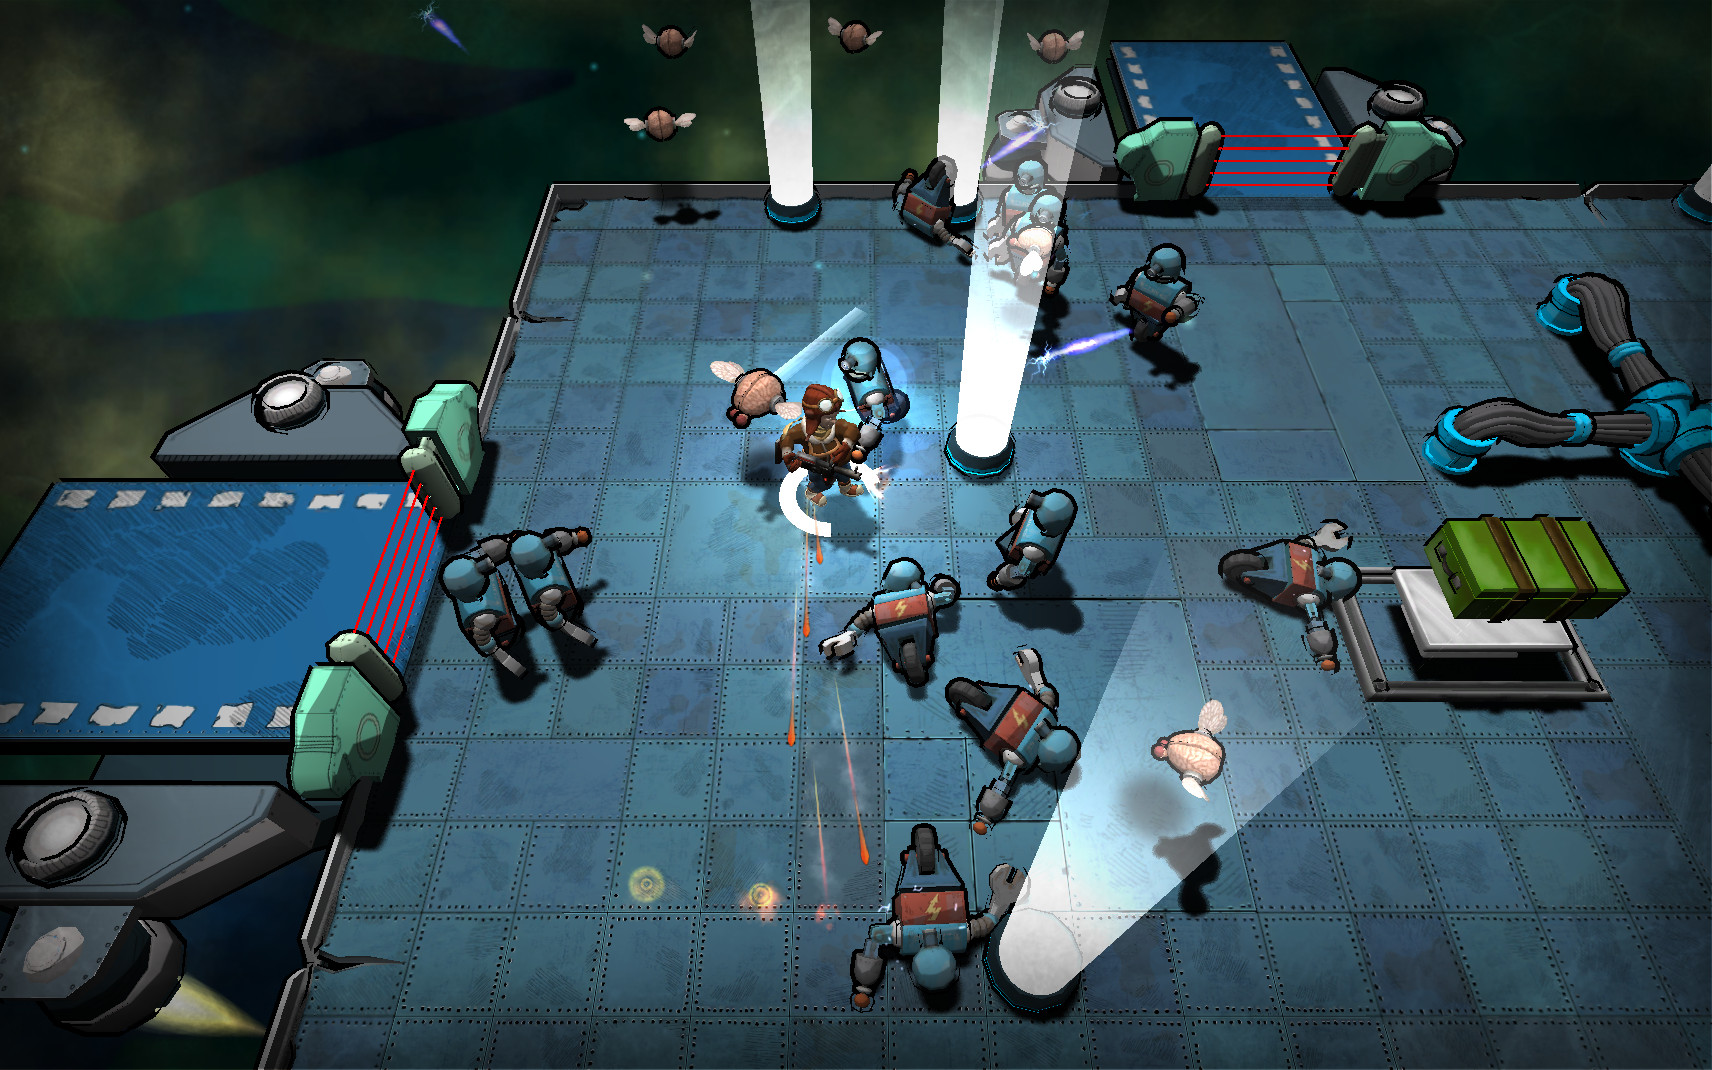 Future Factory is an upcoming procedurally generated twin-stick shooter for mobile